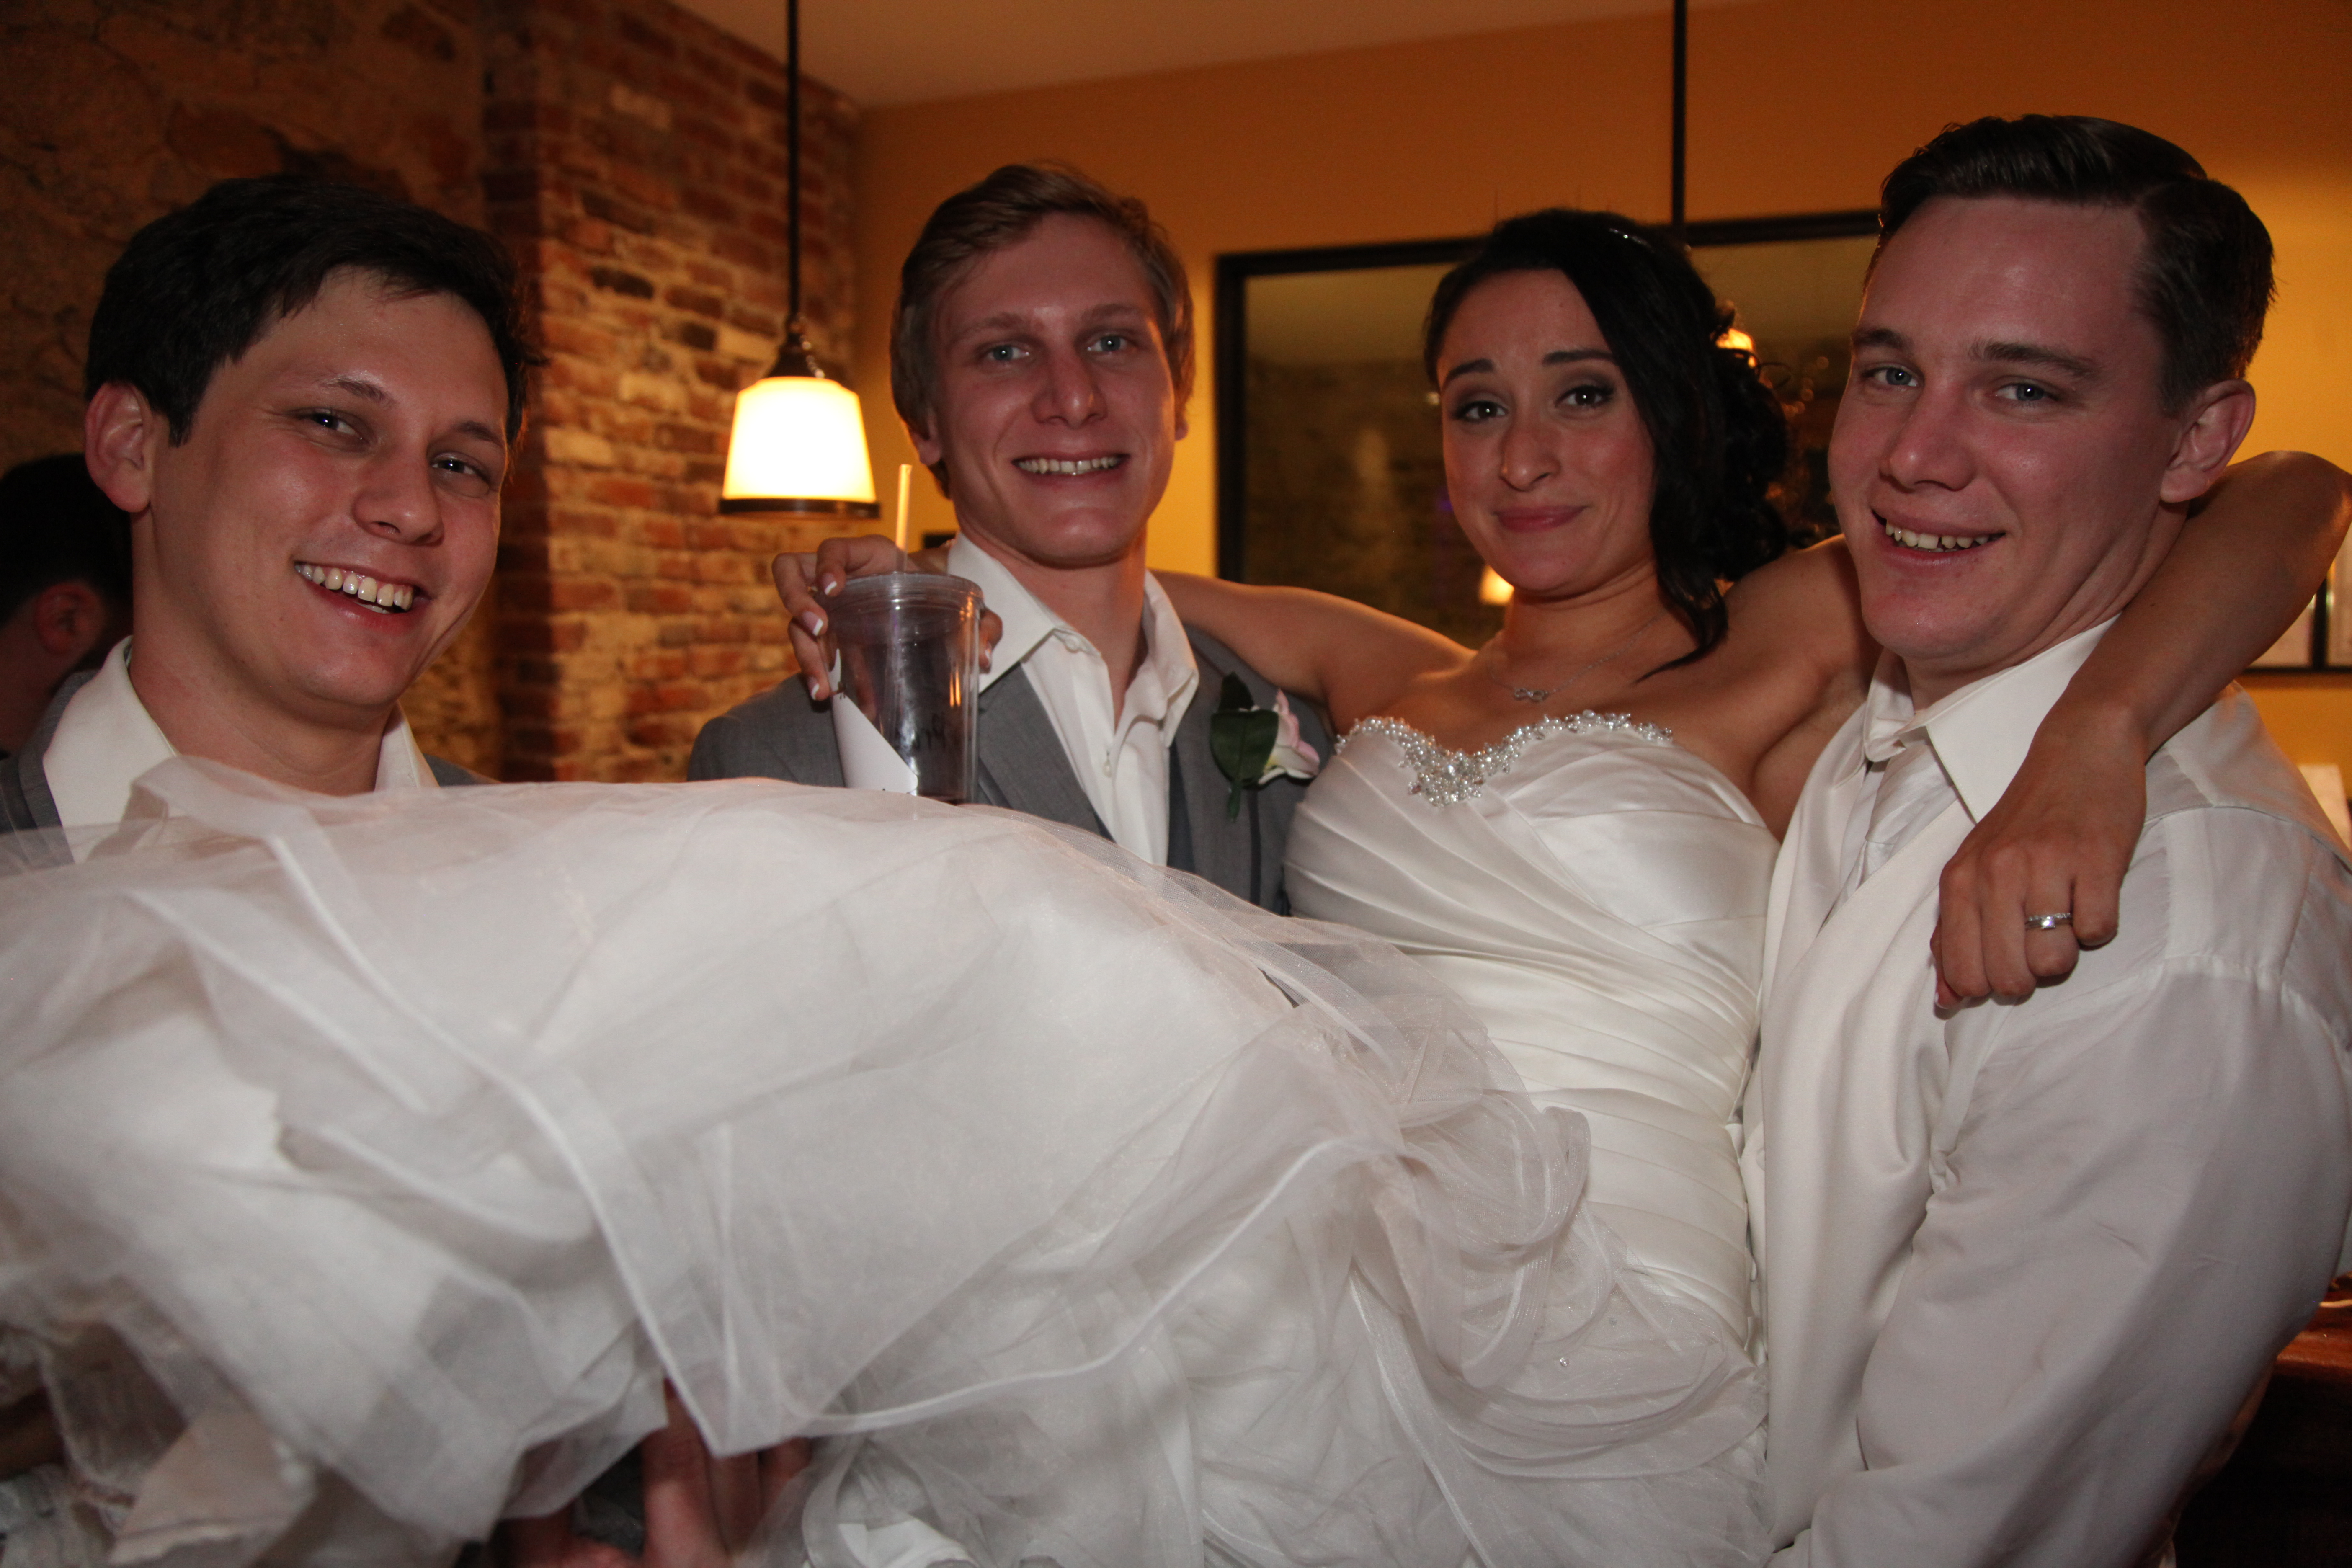 The Bride and the Groomsmen